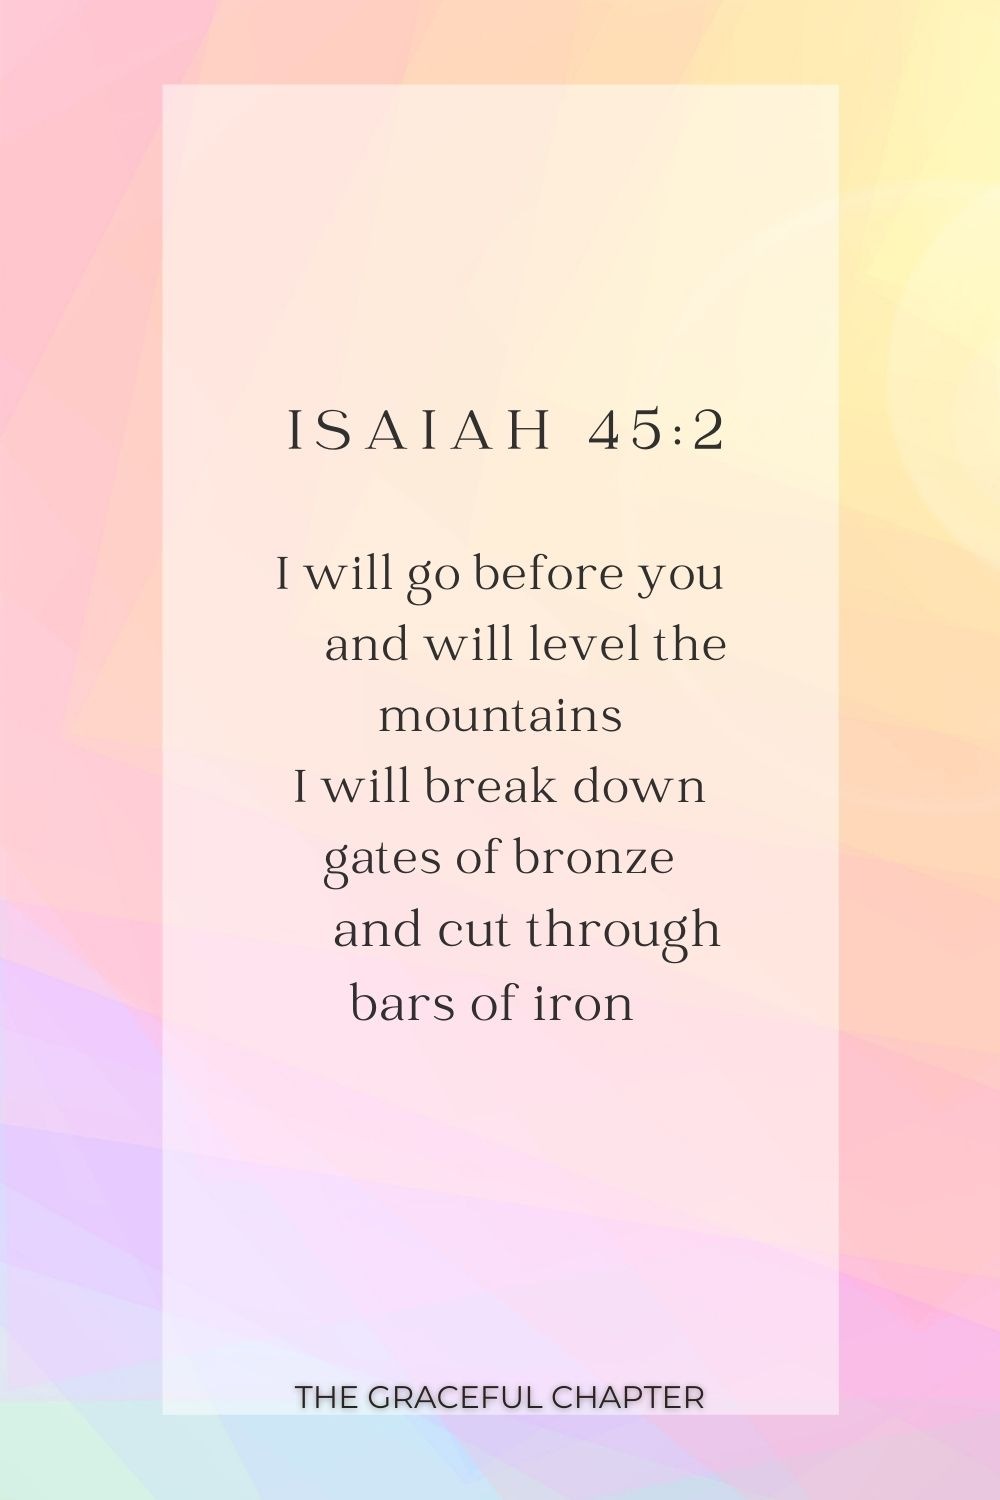 I will go before you     and will level the mountains I will break down gates of bronze     and cut through bars of iron  I will go before you     and will level the mountains I will break down gates of bronze     and cut through bars of iron  Isaiah 45:2